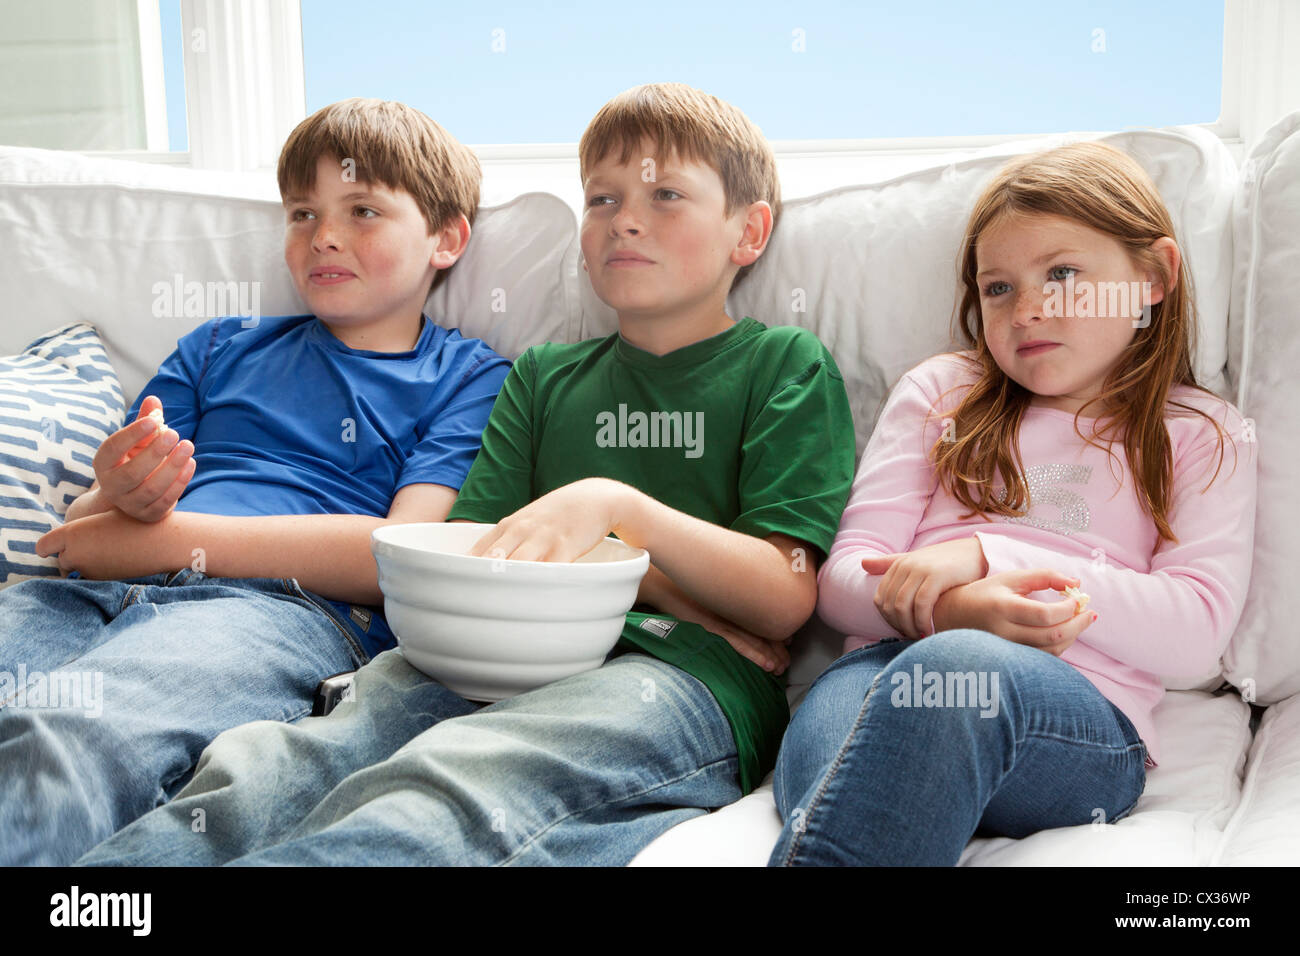 Three kids are sitting on the couch watching tv and eating for 3 on a couch